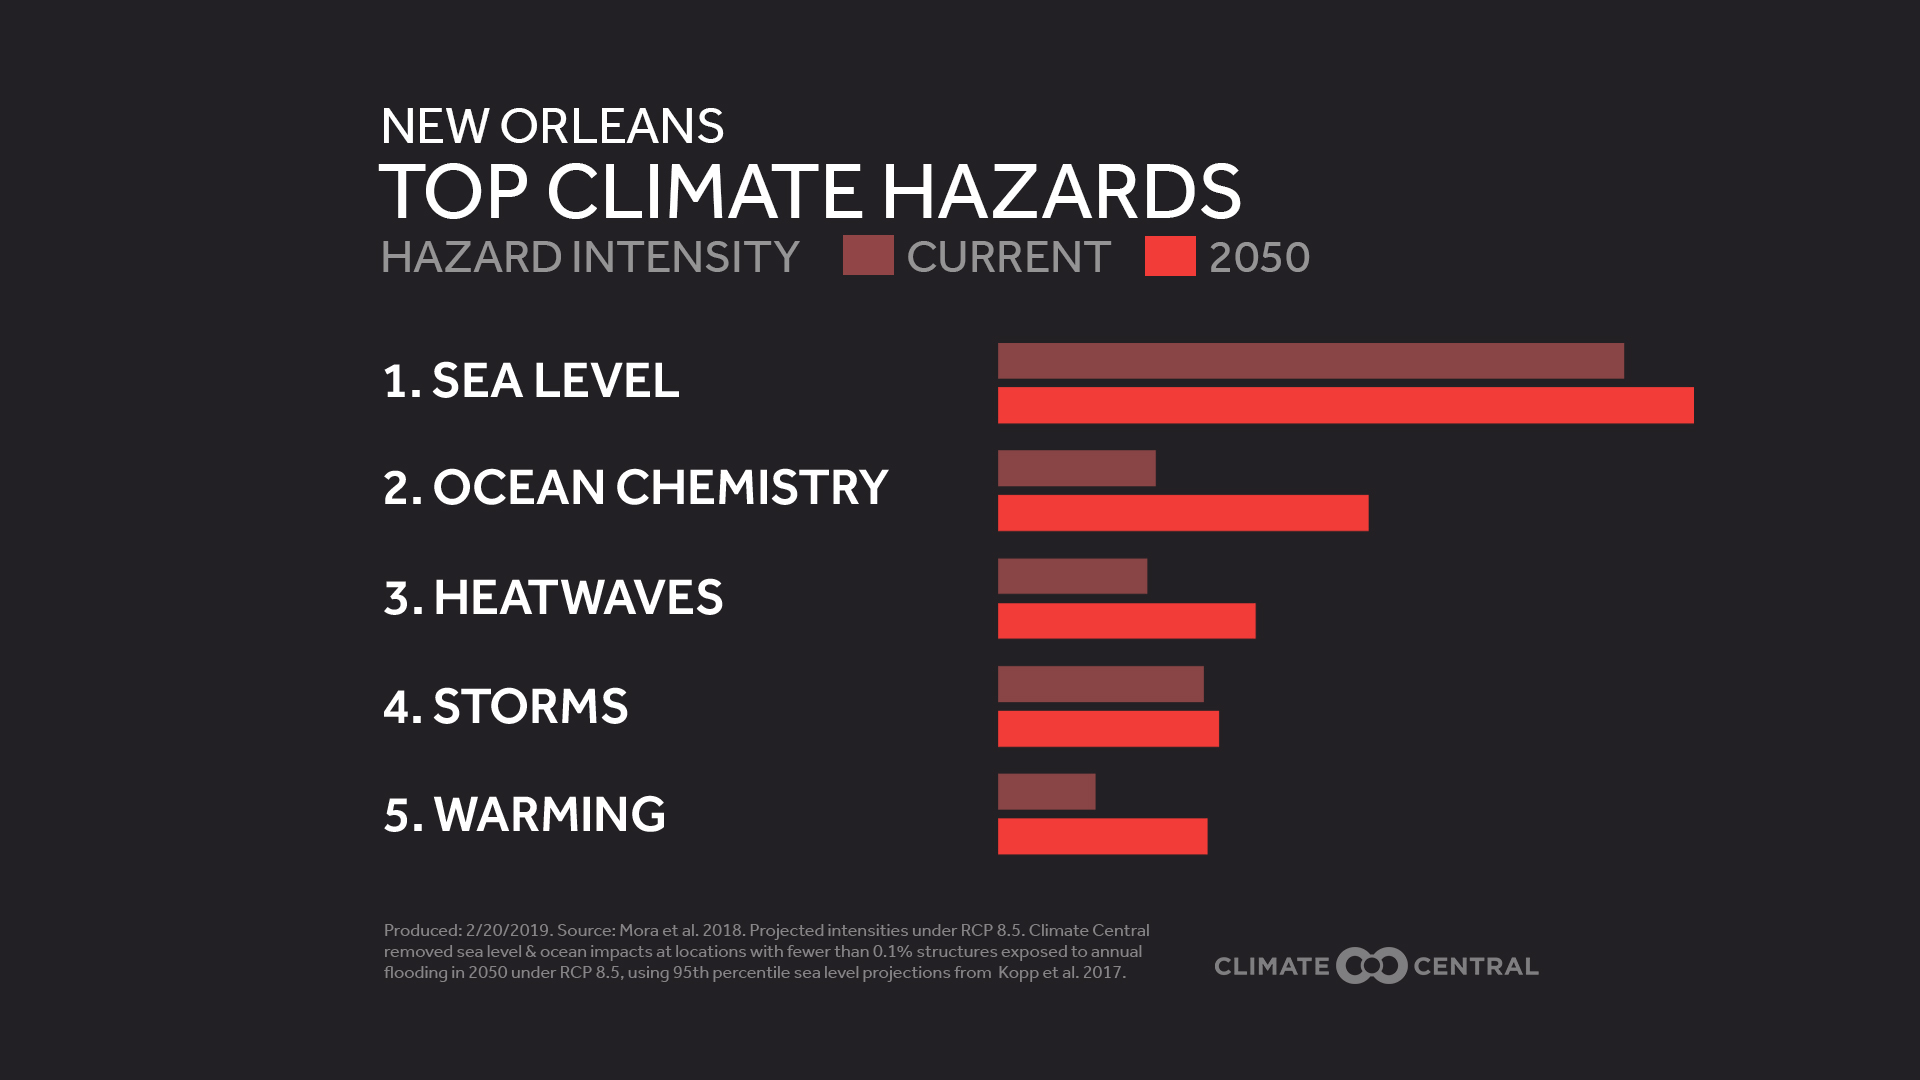 top climate hazards in New orleans